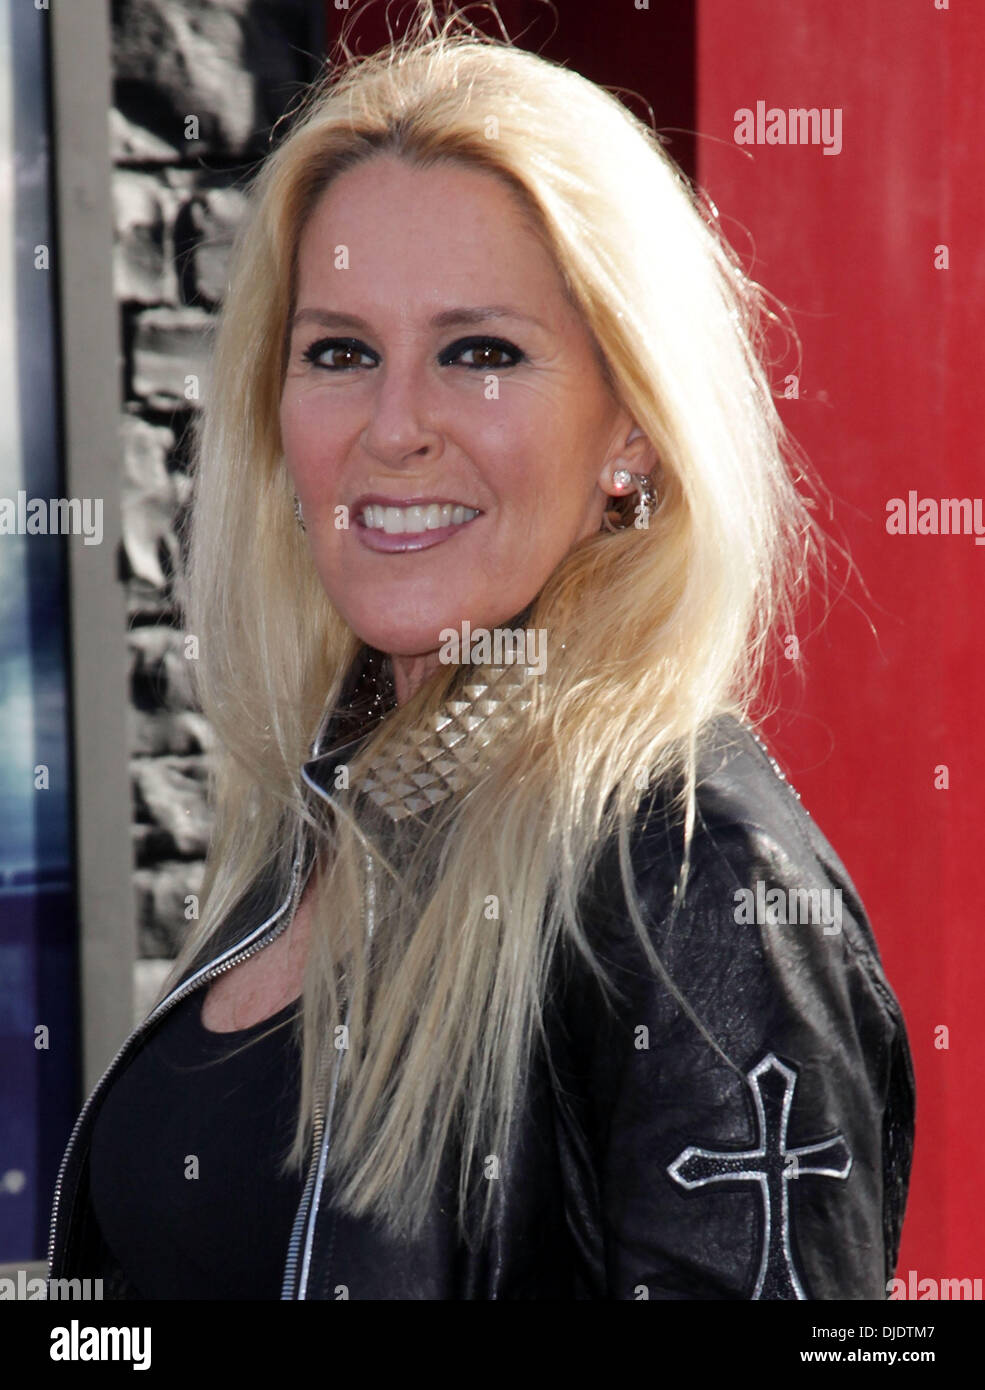 Lita ford premiere of warner bros pictures rock of ages at grauman s chinese theatre arrivals los angeles california 08 06 12